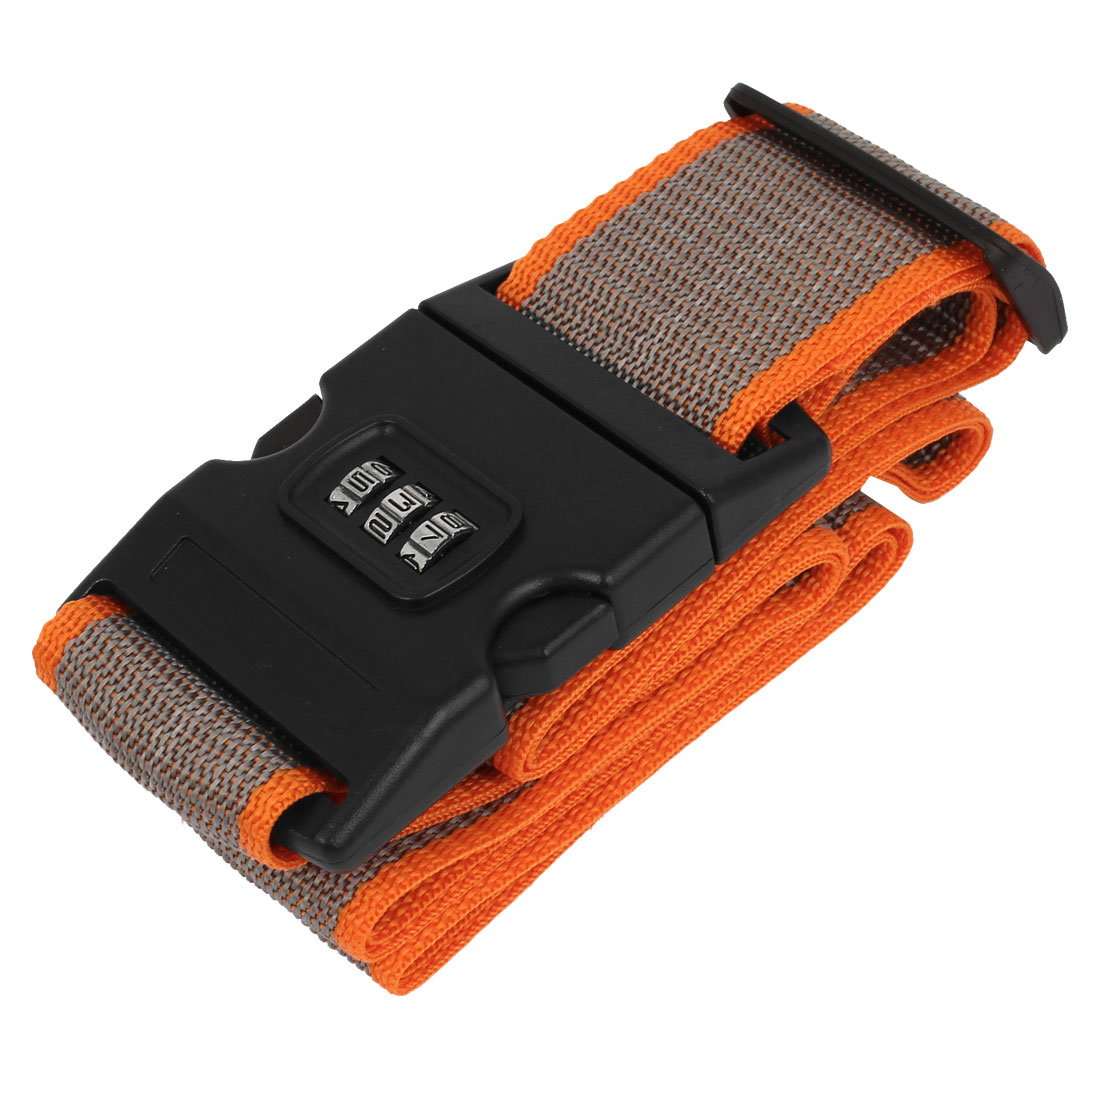 Release Buckle 3 Digits Password Combination Locking Luggage Strap Gray Orange